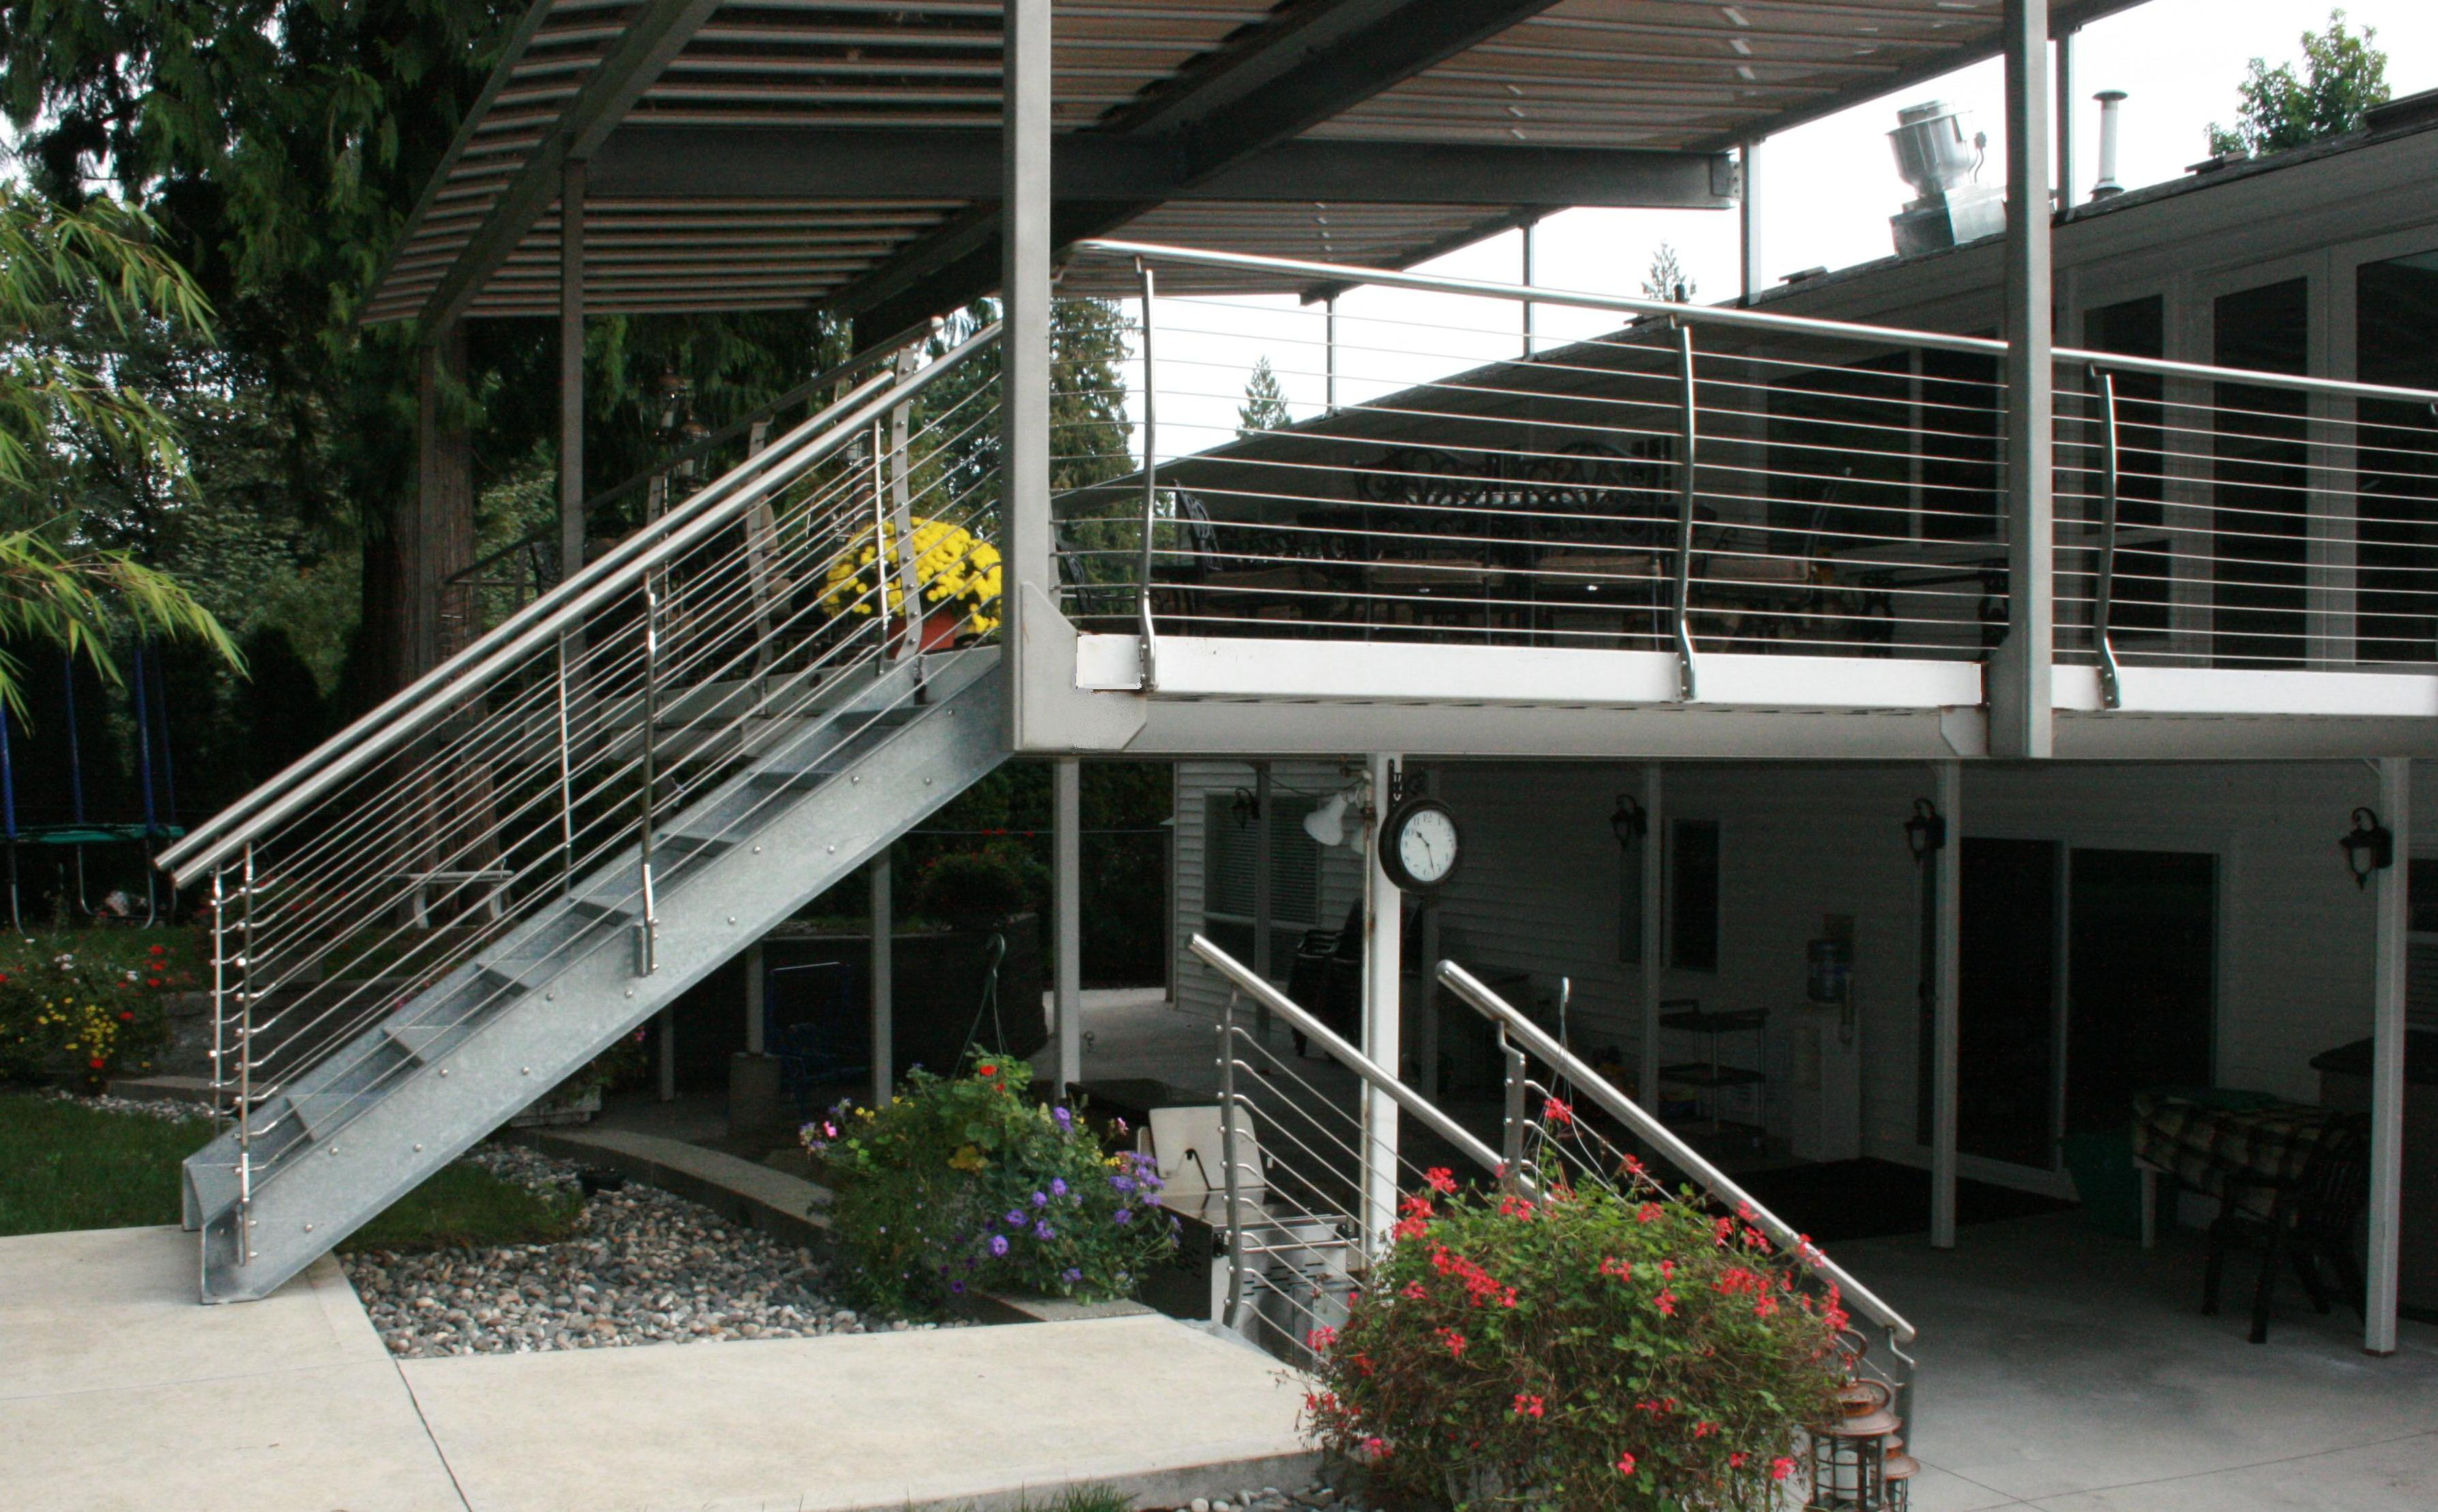 Ordinaire Stainless Steel Patio Railing With Galvanized Stairs